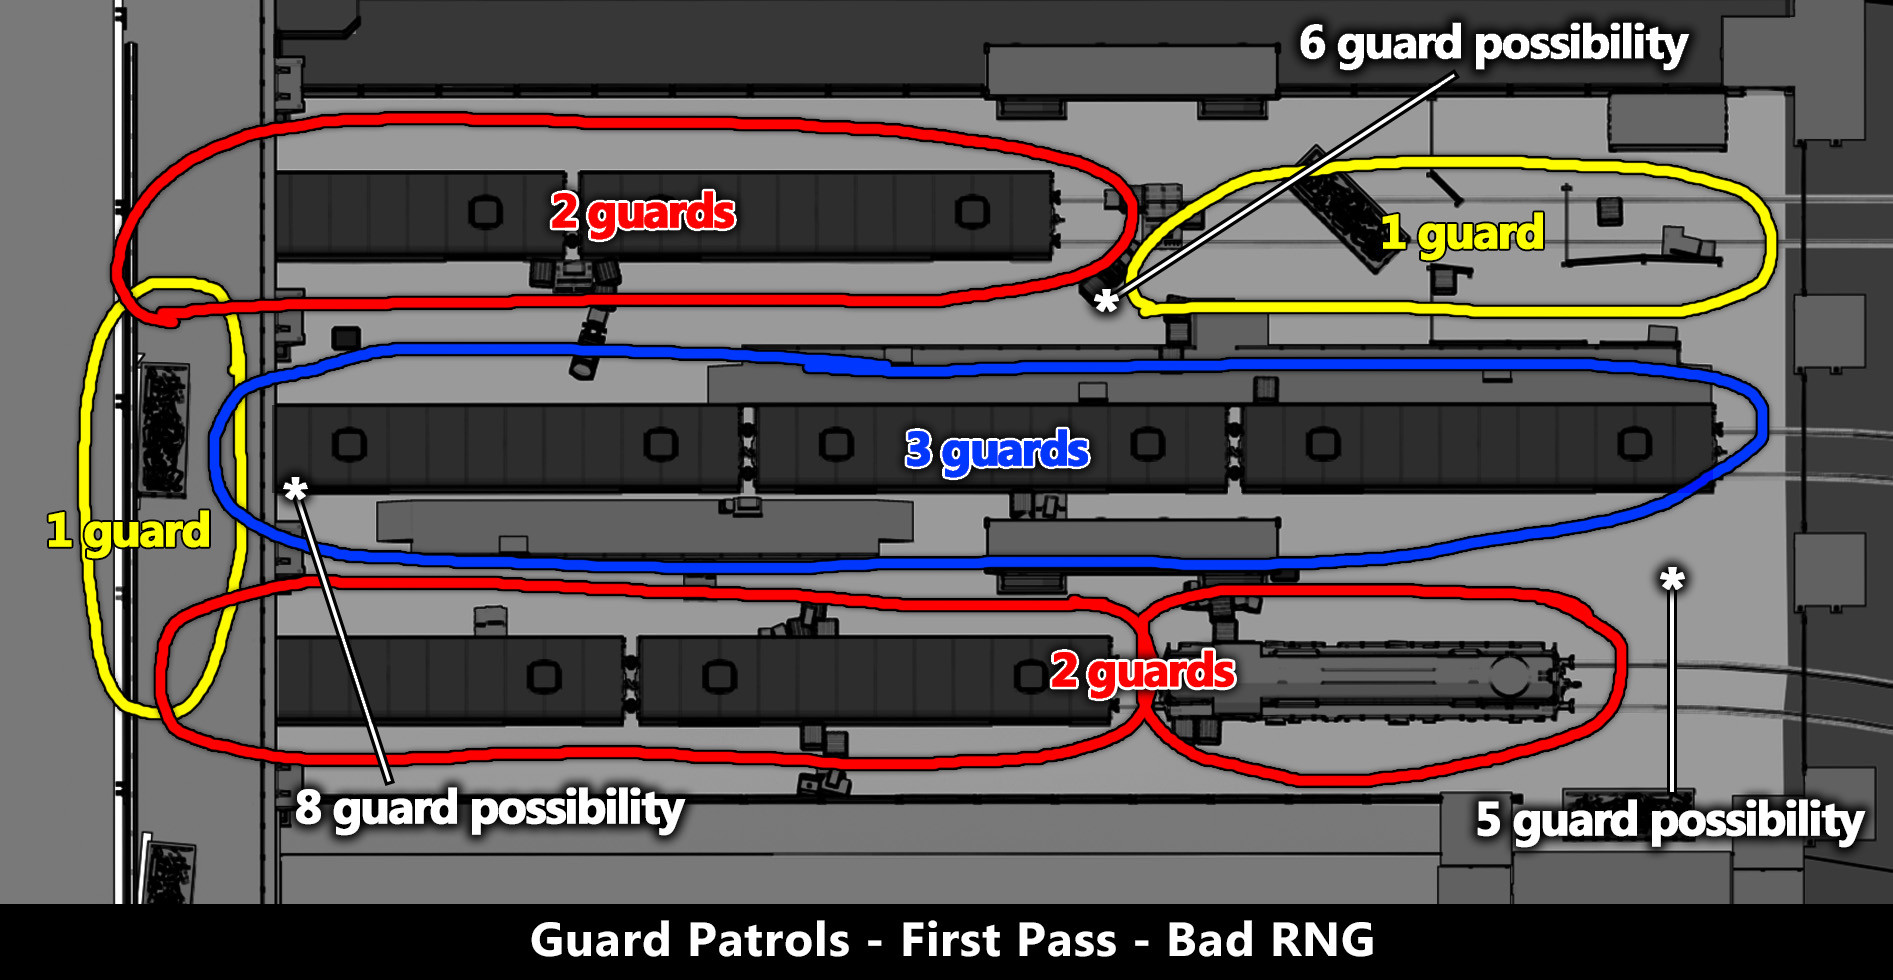 guard_patrol_first_pass.jpg.ee0392aac79bda4a5dcf6ff23745f887.jpg